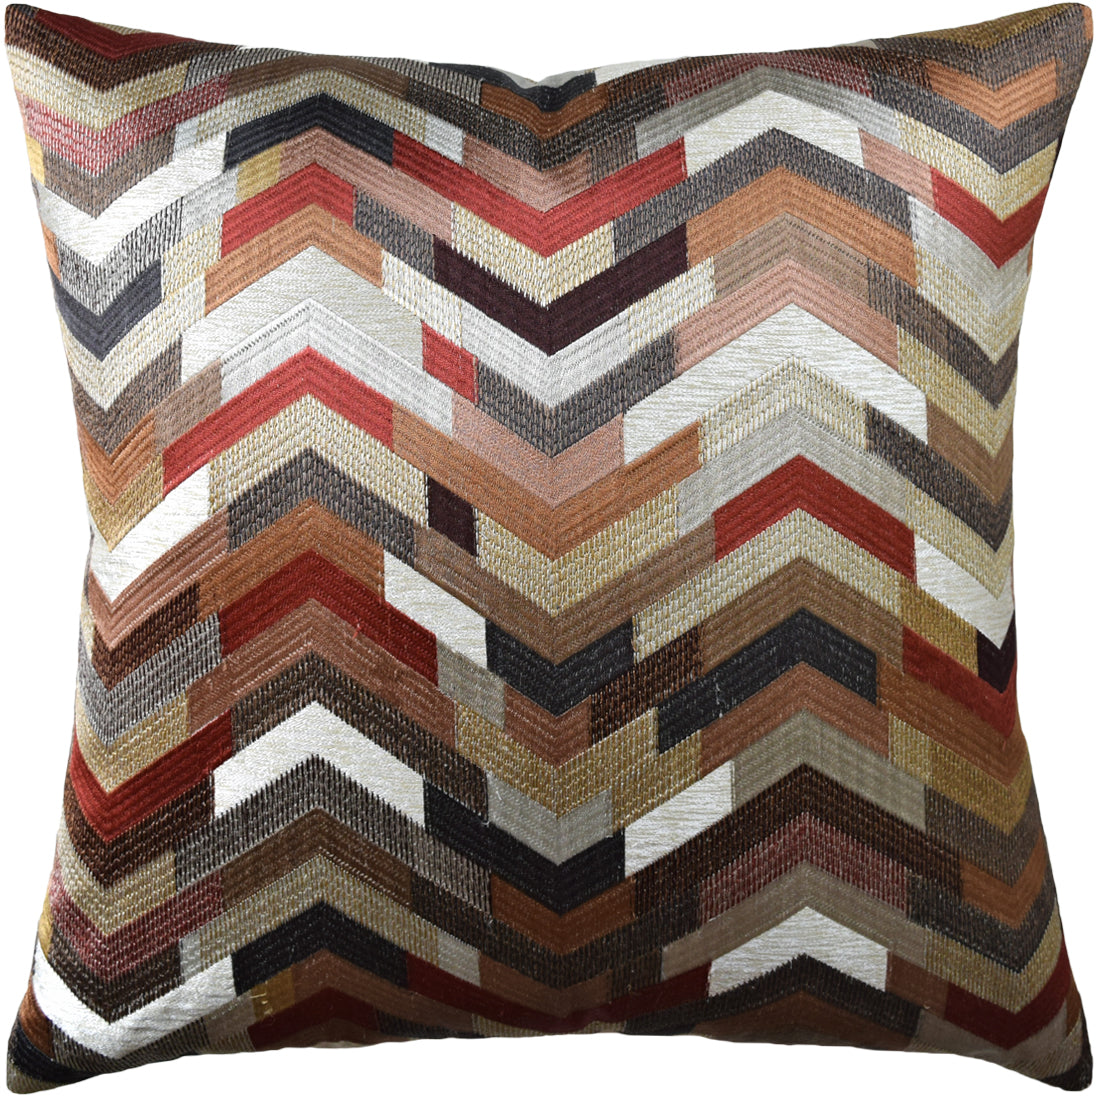 Ryan Studio Catwalk Pillow in Spice